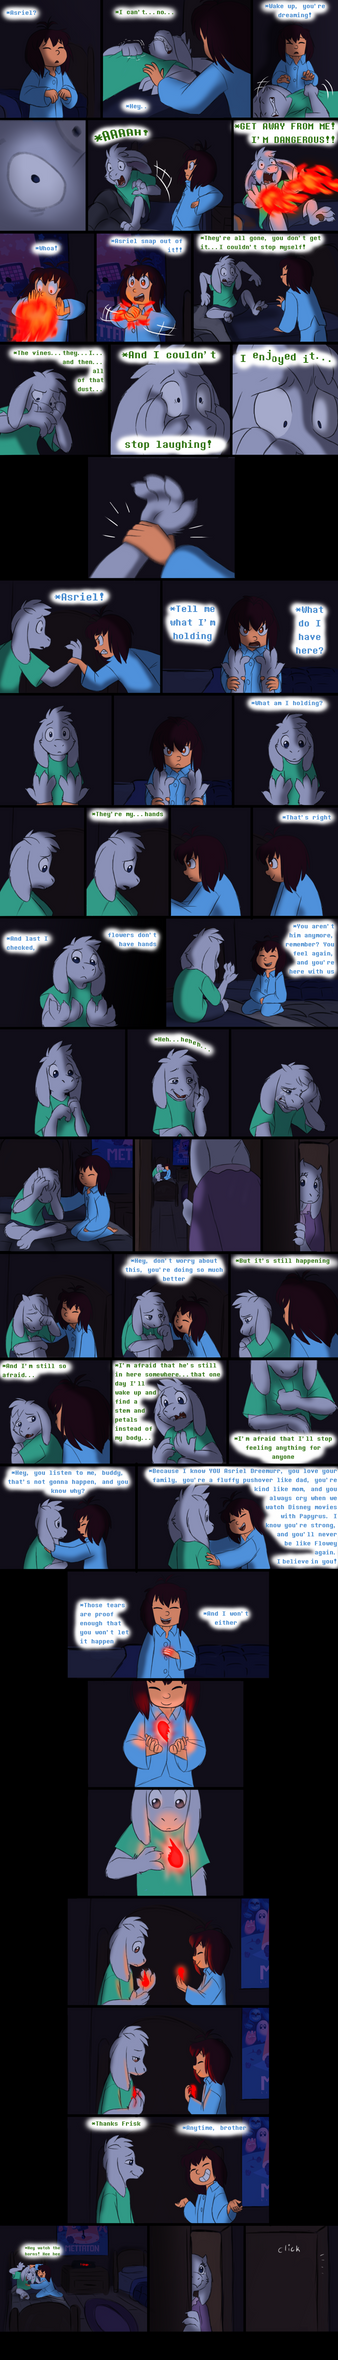 Endertale - Page 16 by TC-96